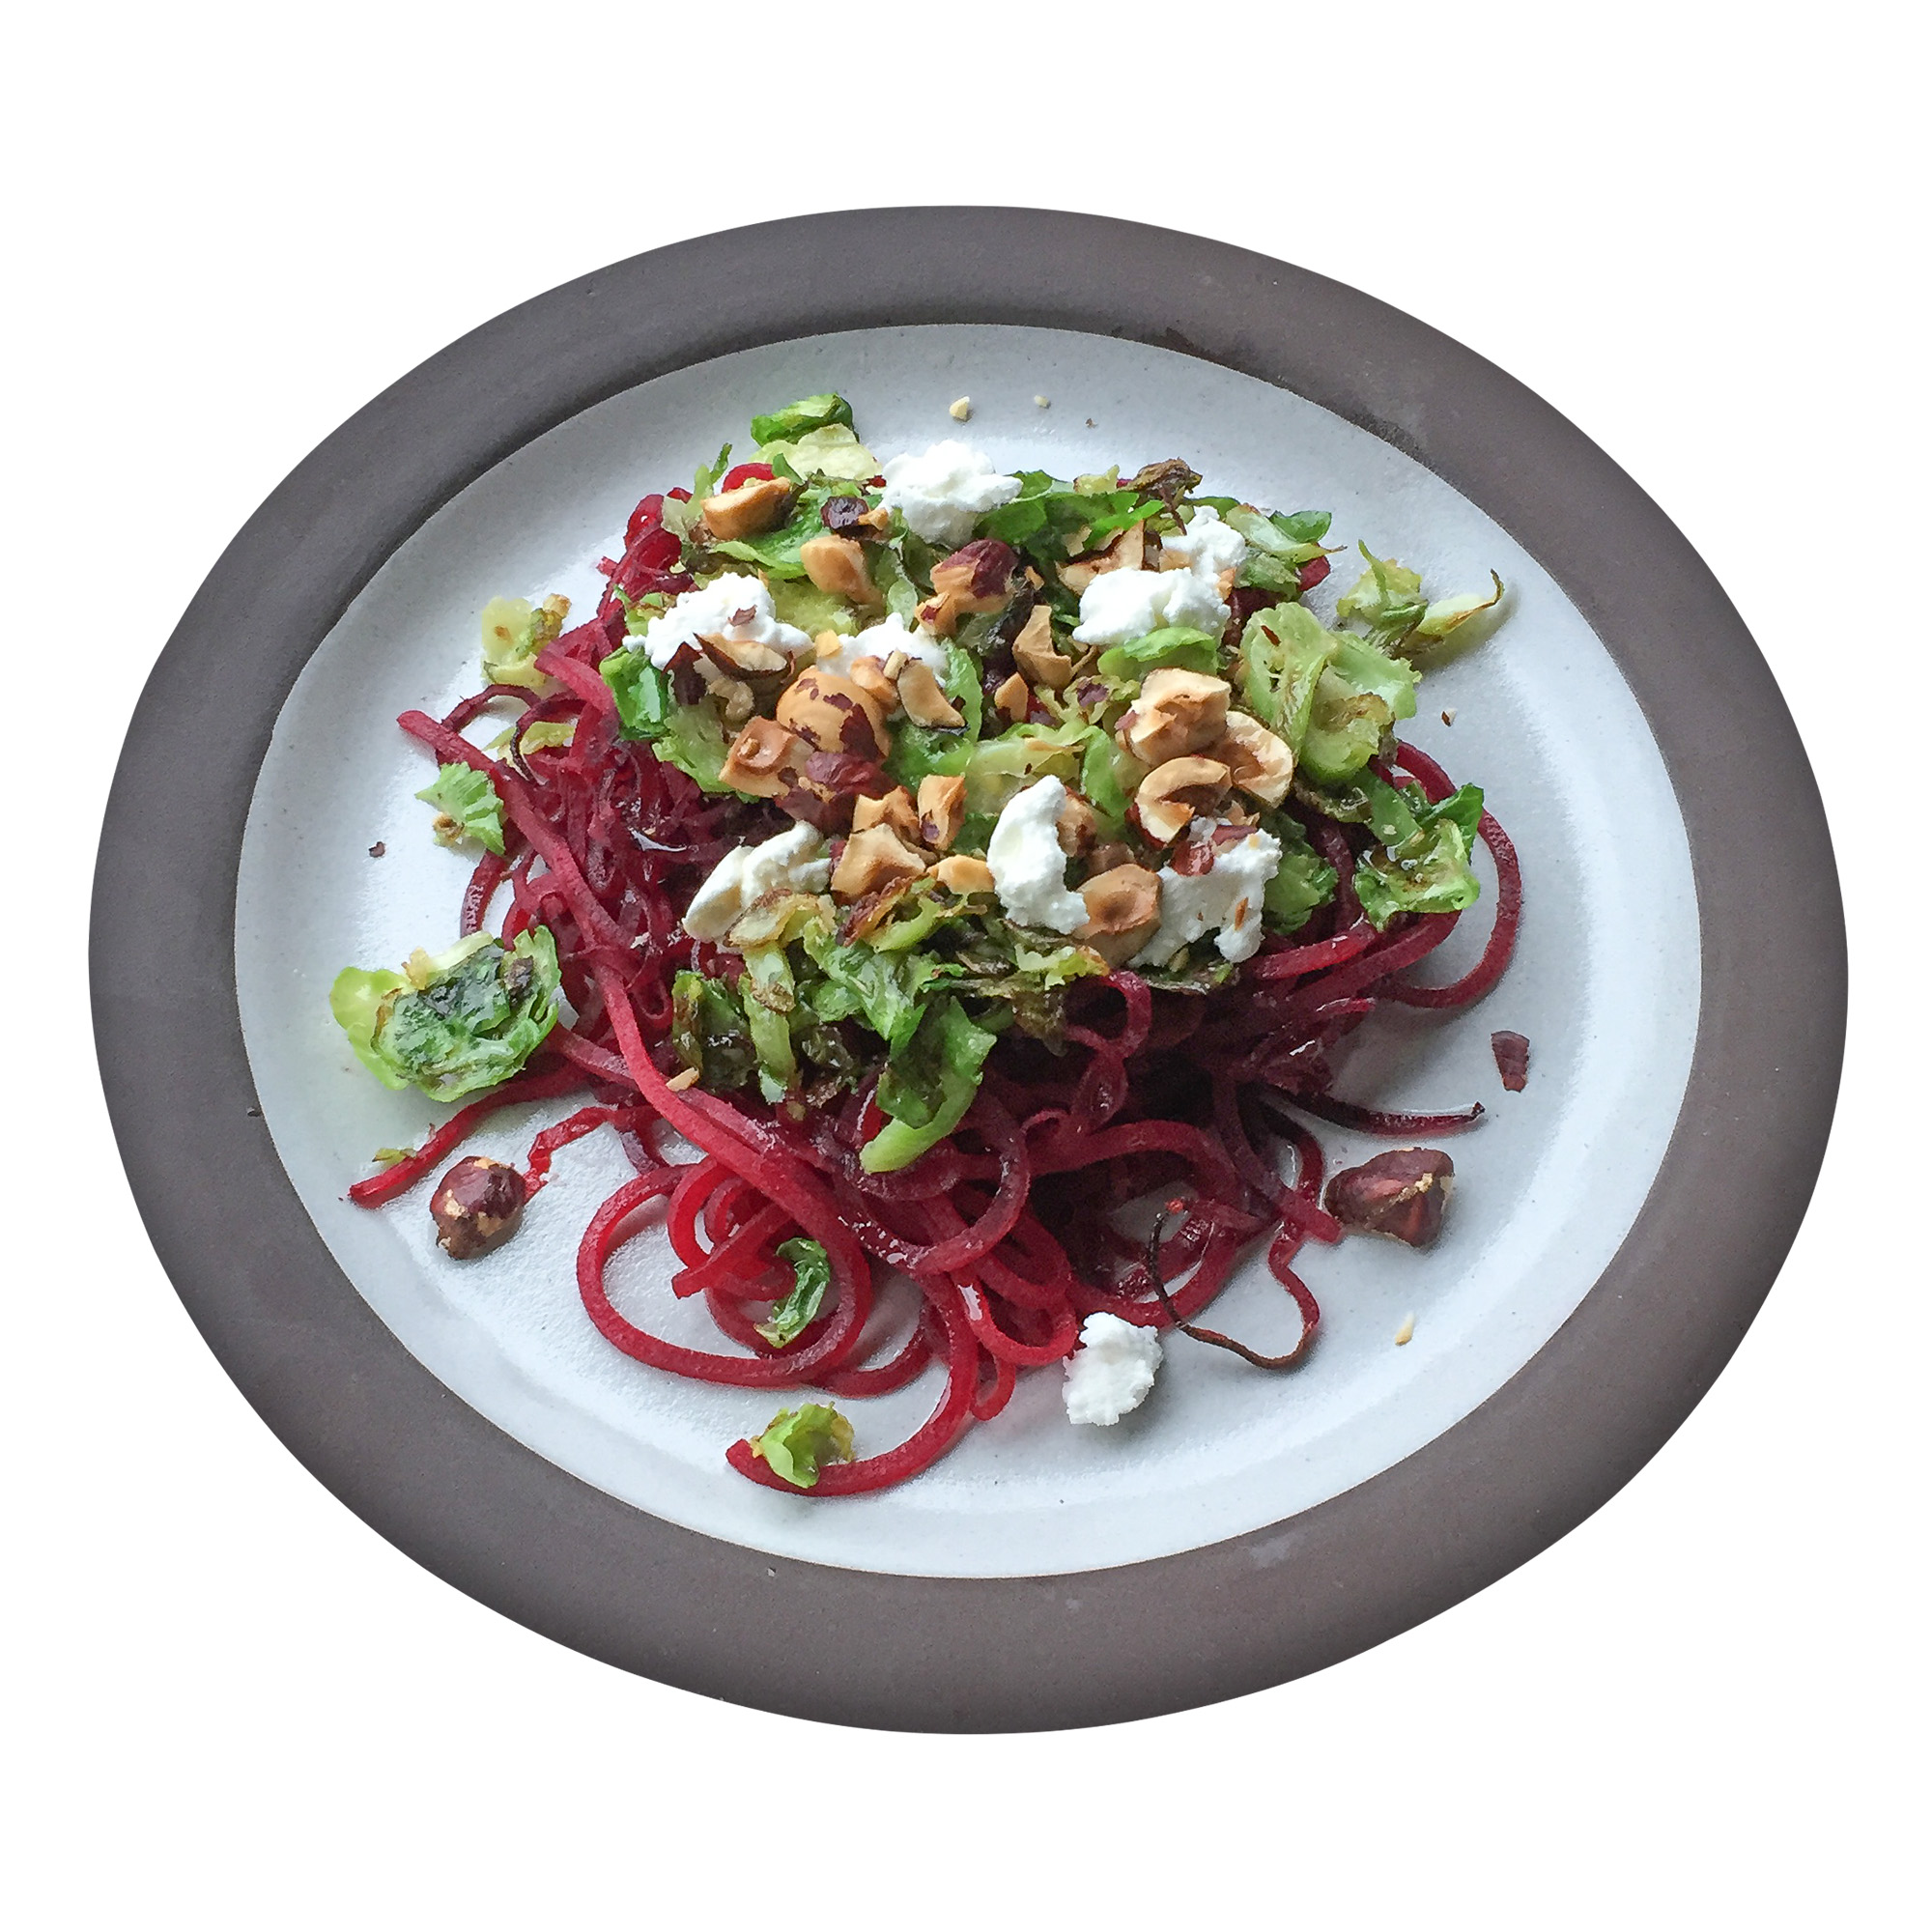 Plate of spiraled beets and salad toppings